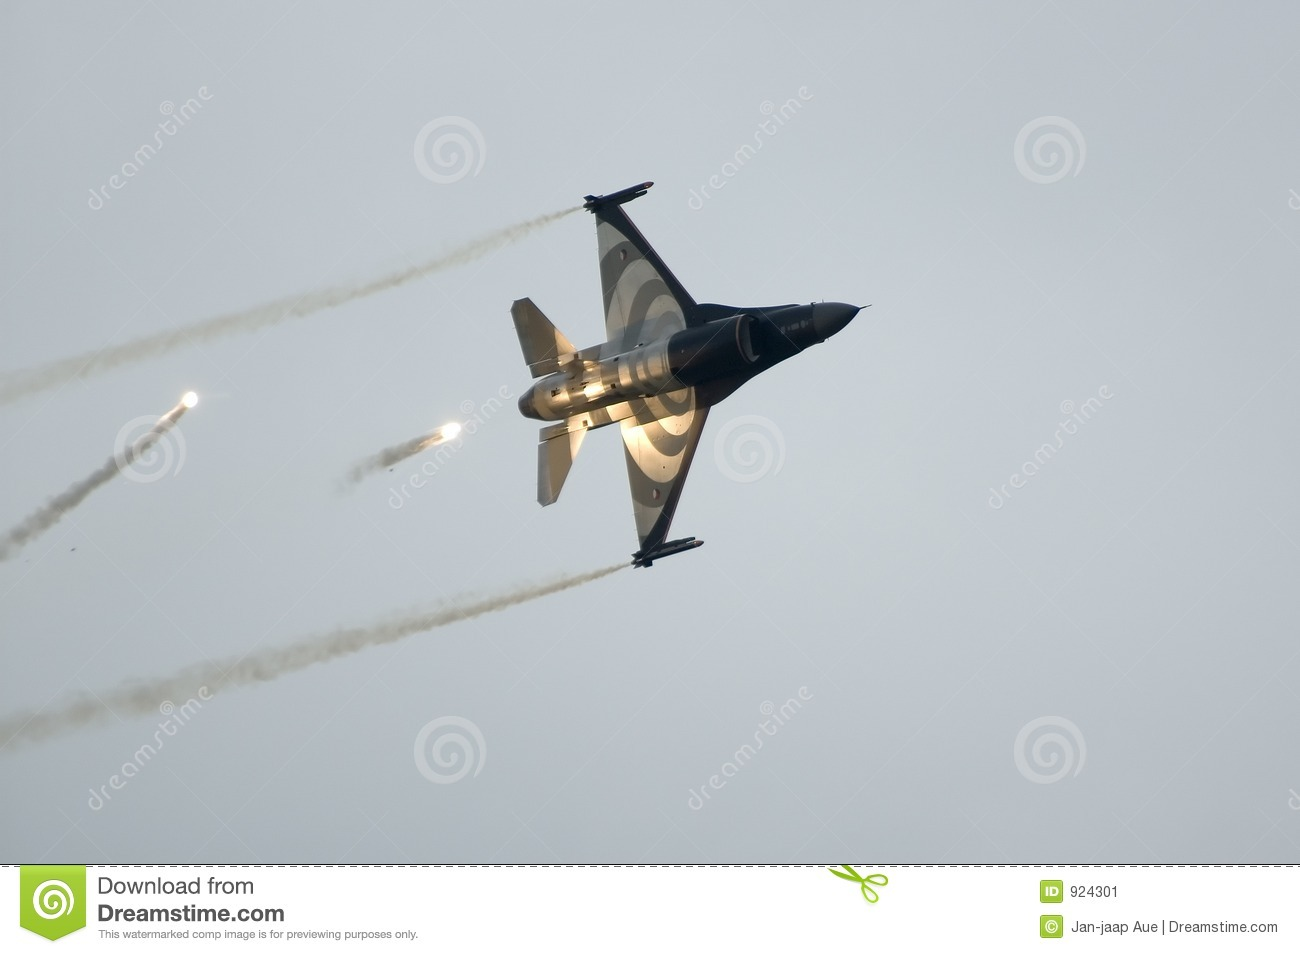 F16 Falcon in action